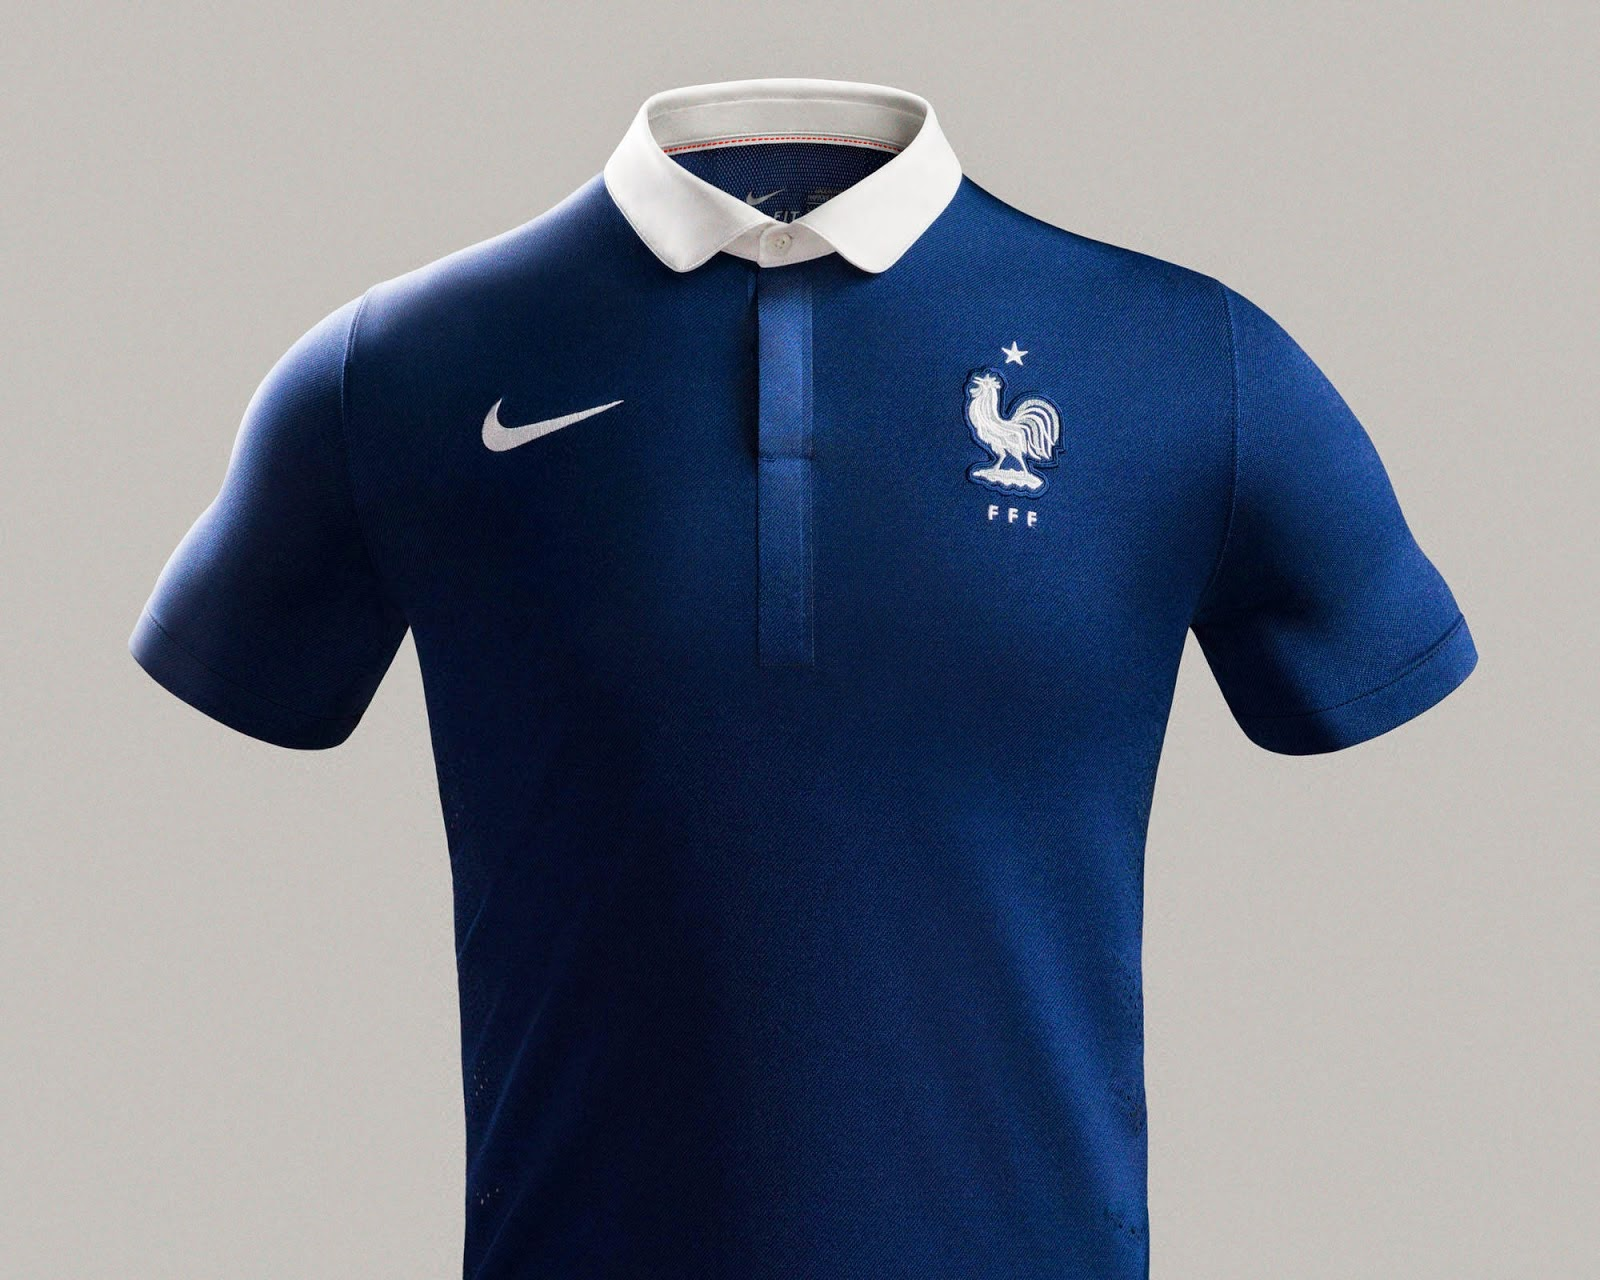 FRANCE JERSEY WORLD CUP 2014 GRED AAA